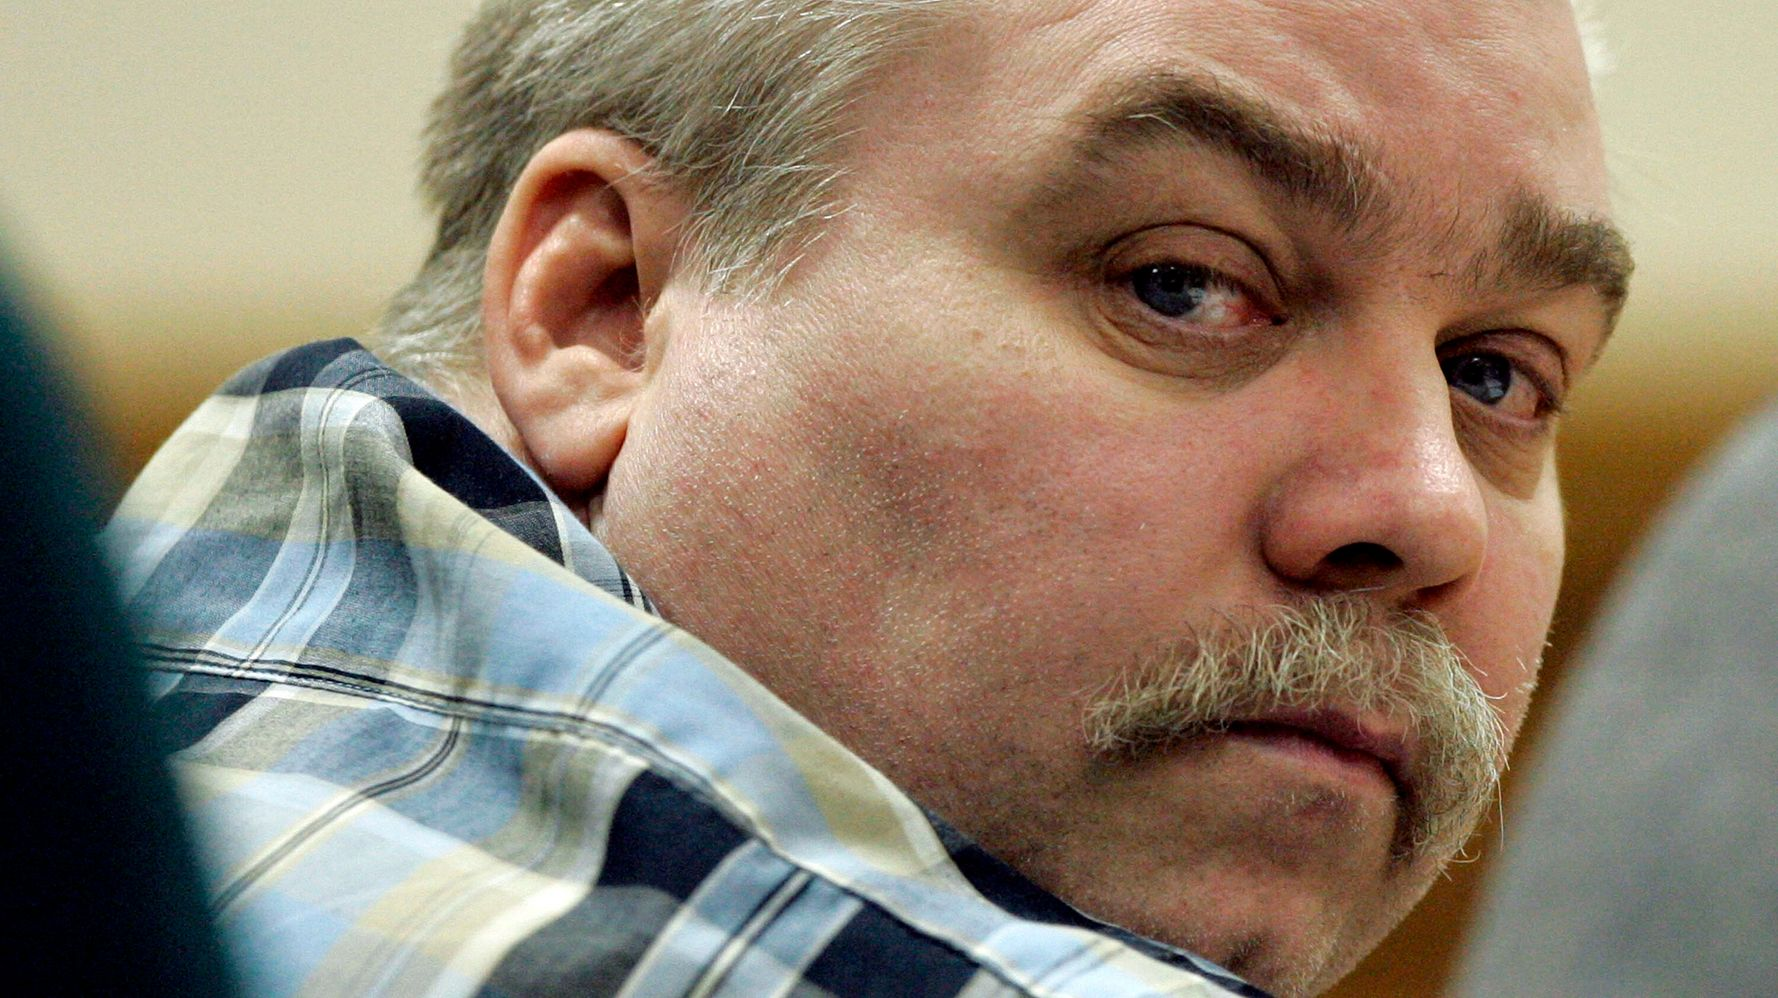 'Making A Murderer' Subject Steven Avery Won't Get New Trial, Court Rules